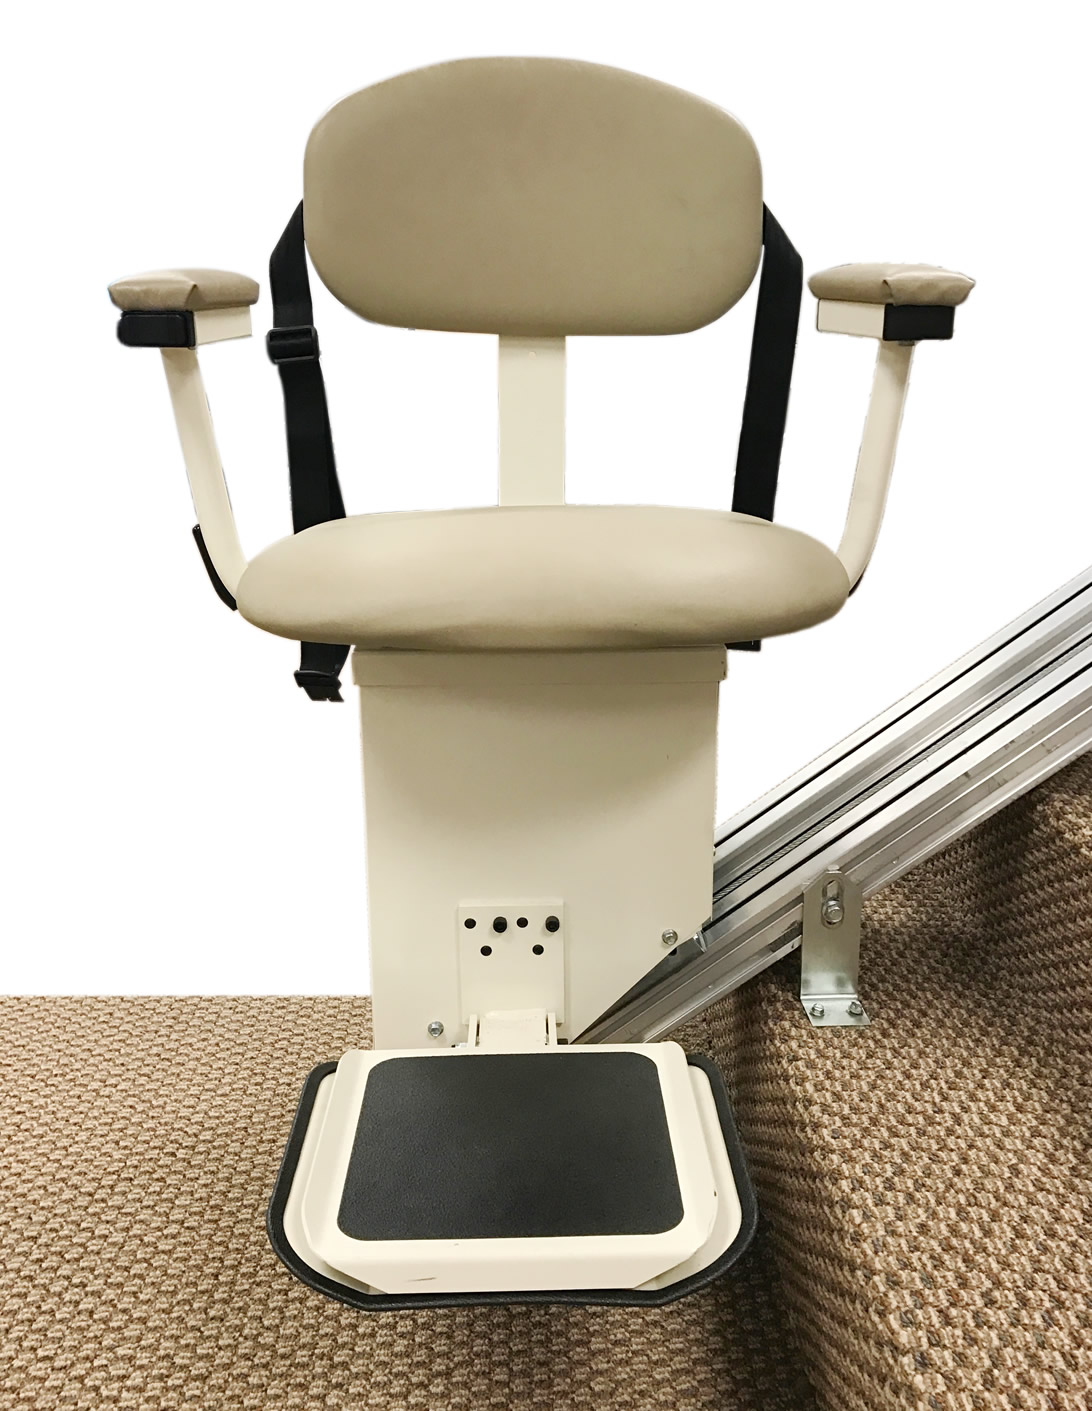 ameriglide wilmington stair lifts lift chairs wheelchair lifts